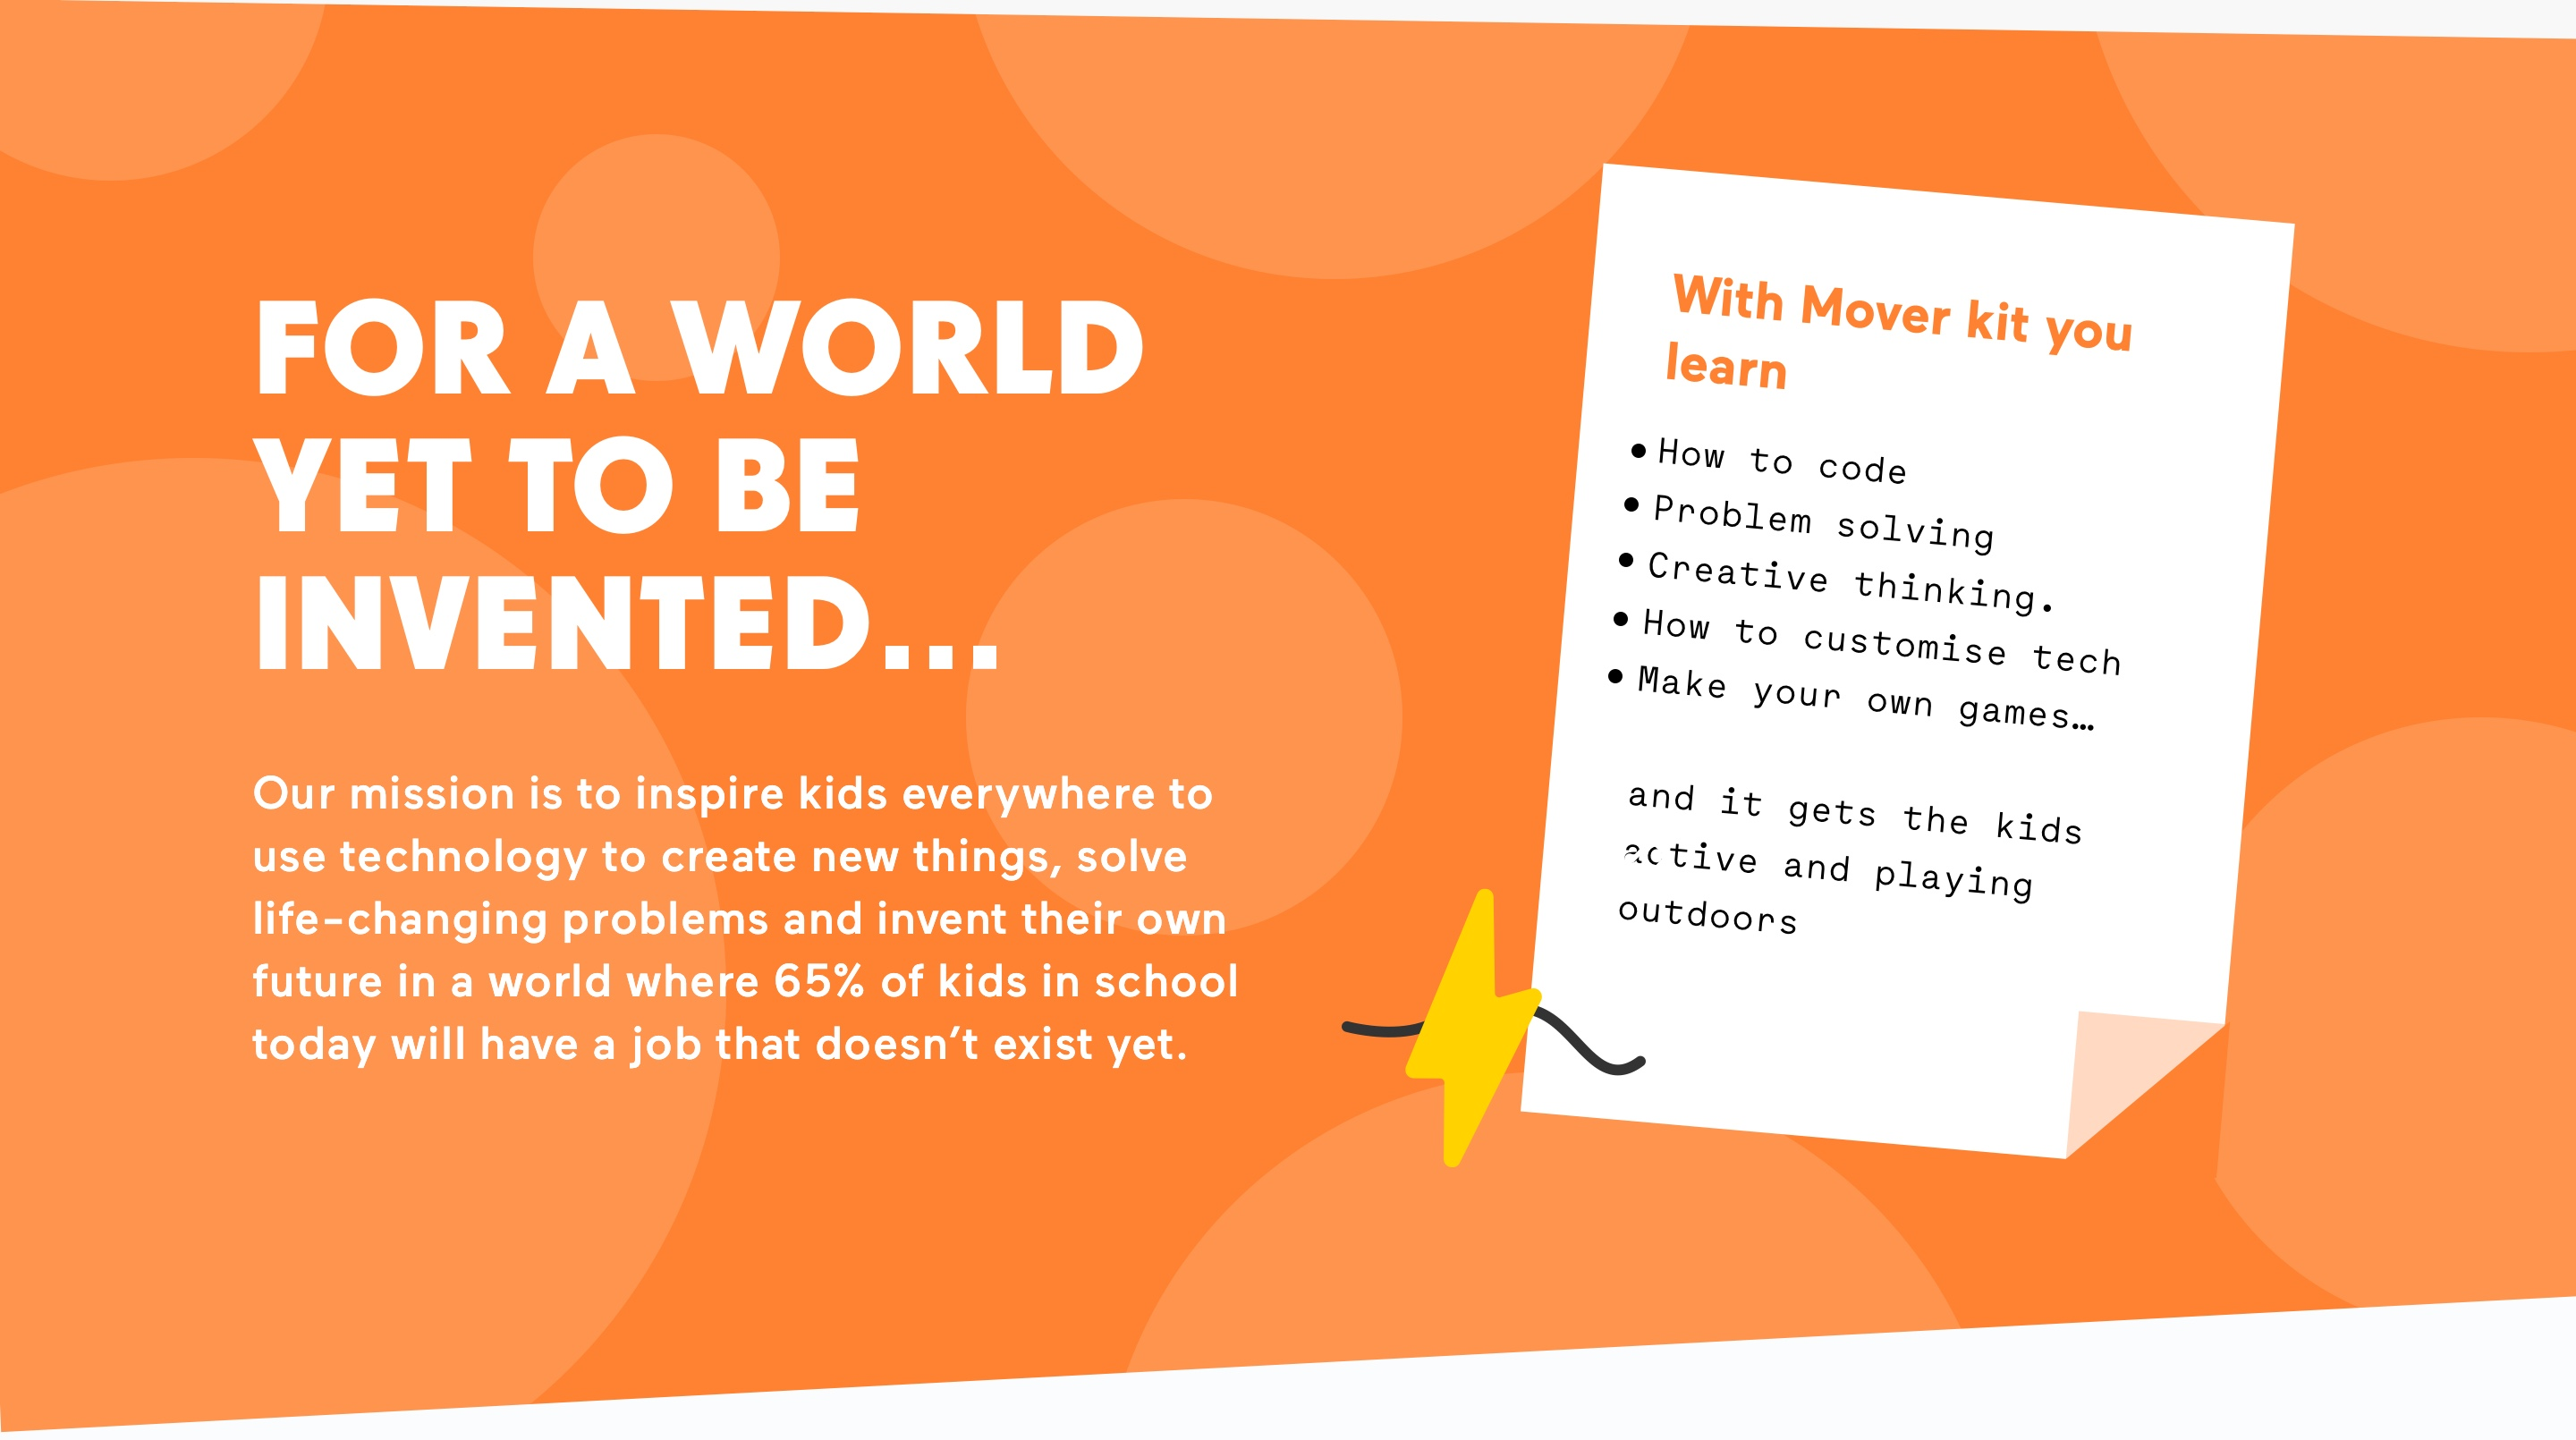 mover kit coding toys for kids that react to movement perfect